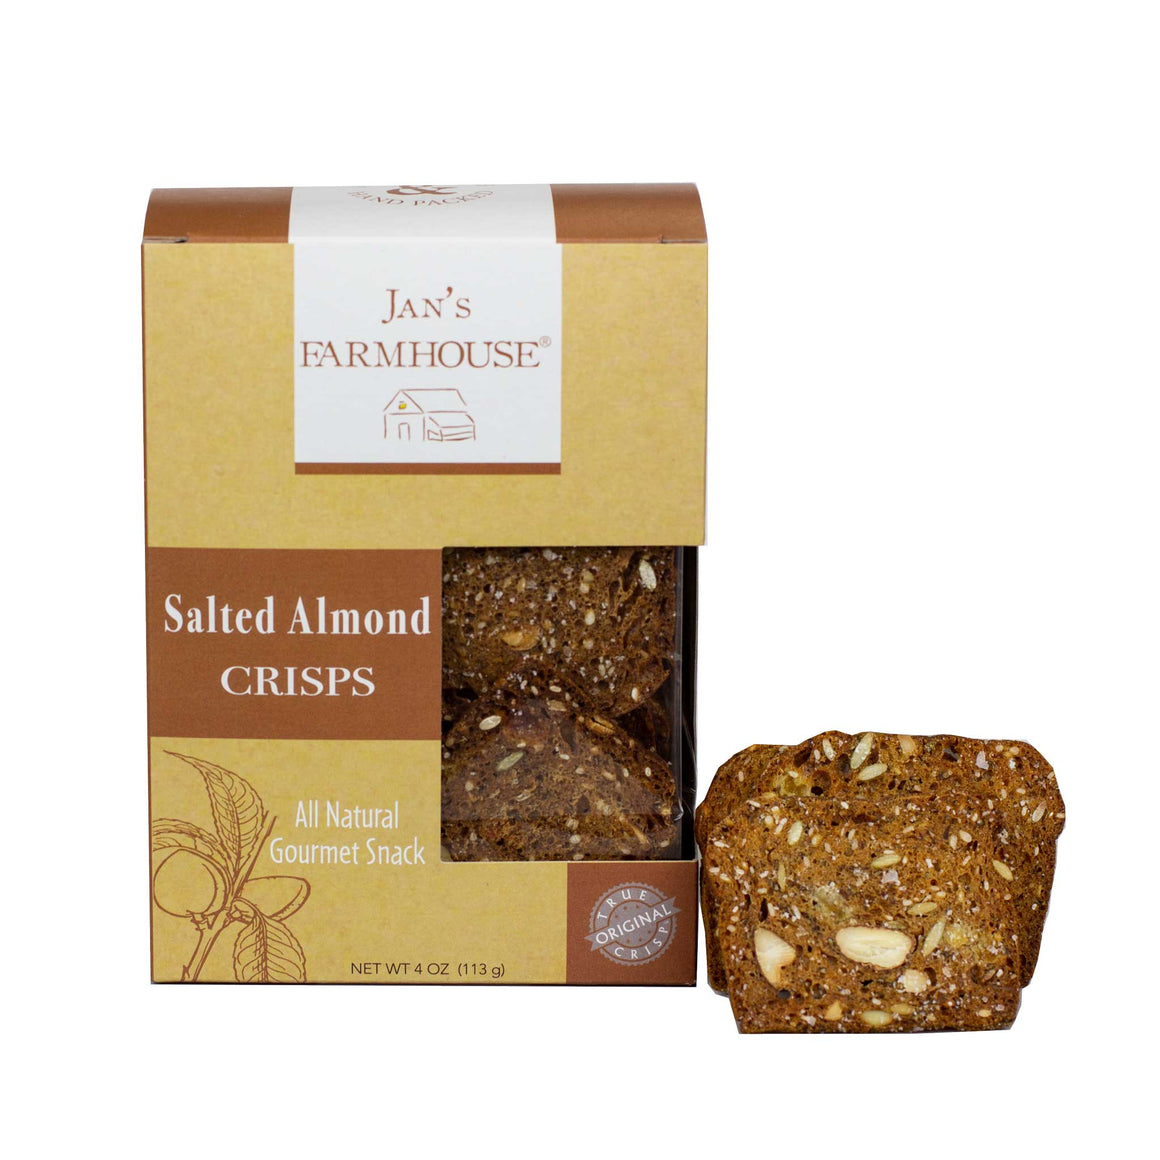 Jan's Farmhouse Salted Almond Crisps